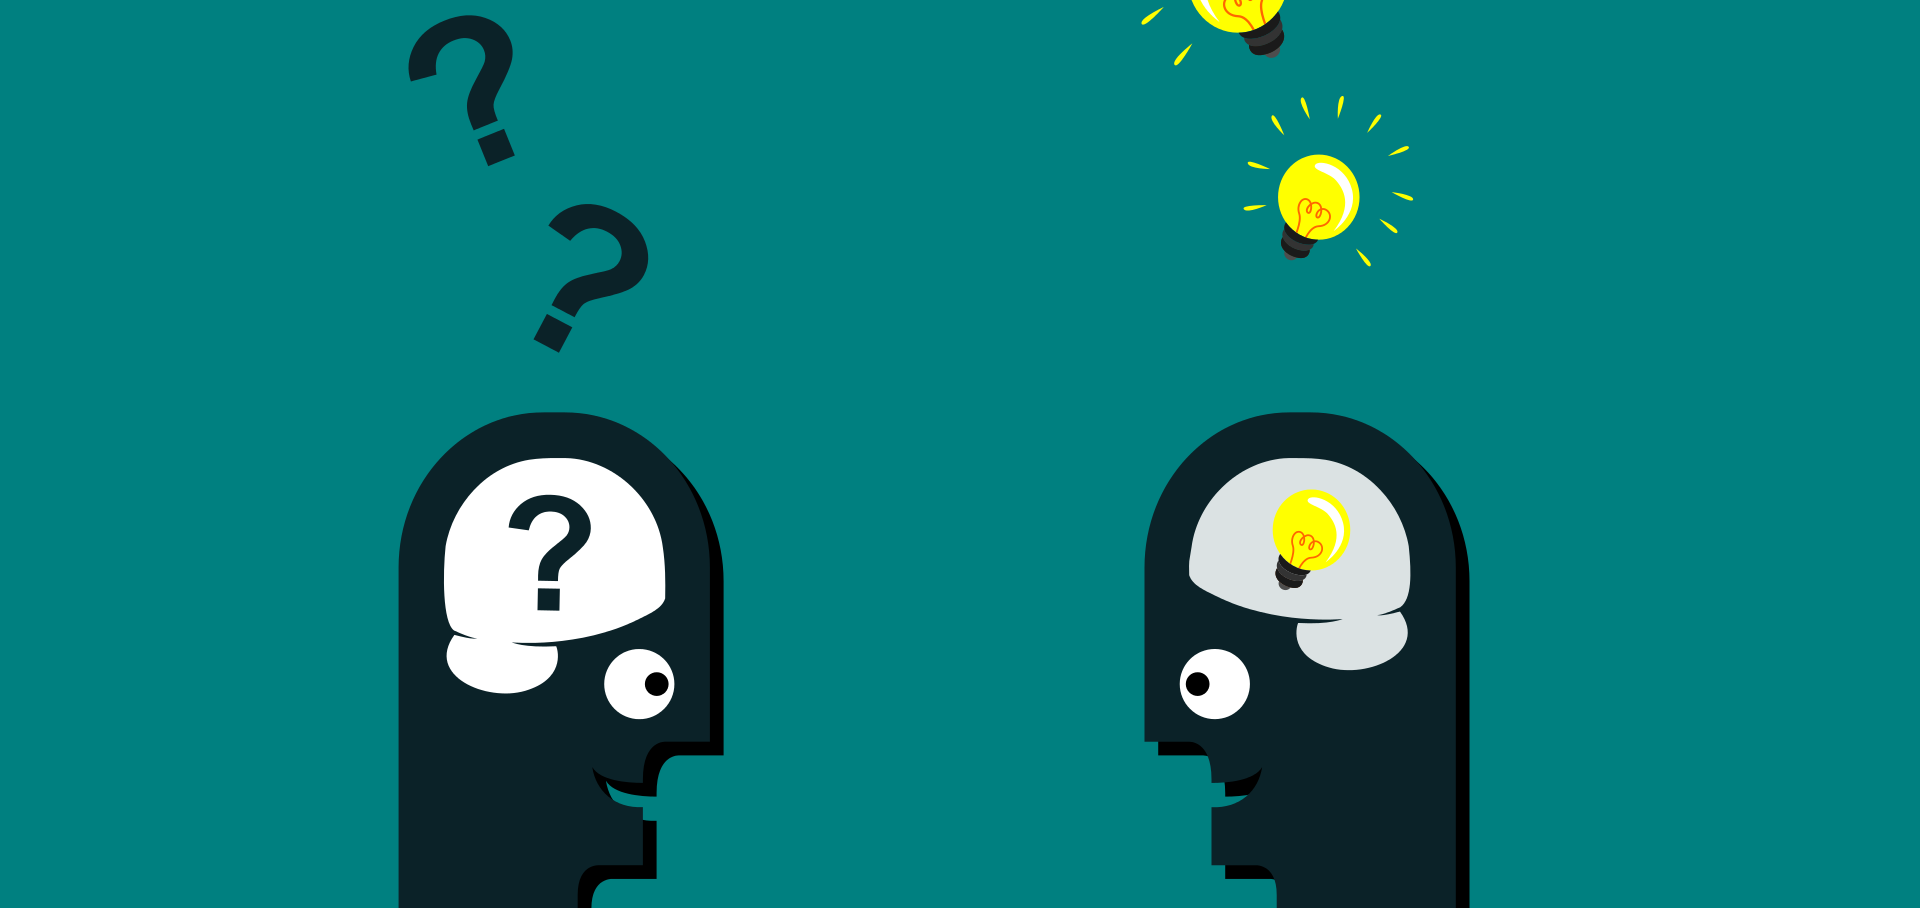 Cartoon of two heads facing each other, one asking questions and the other coming up with ideas